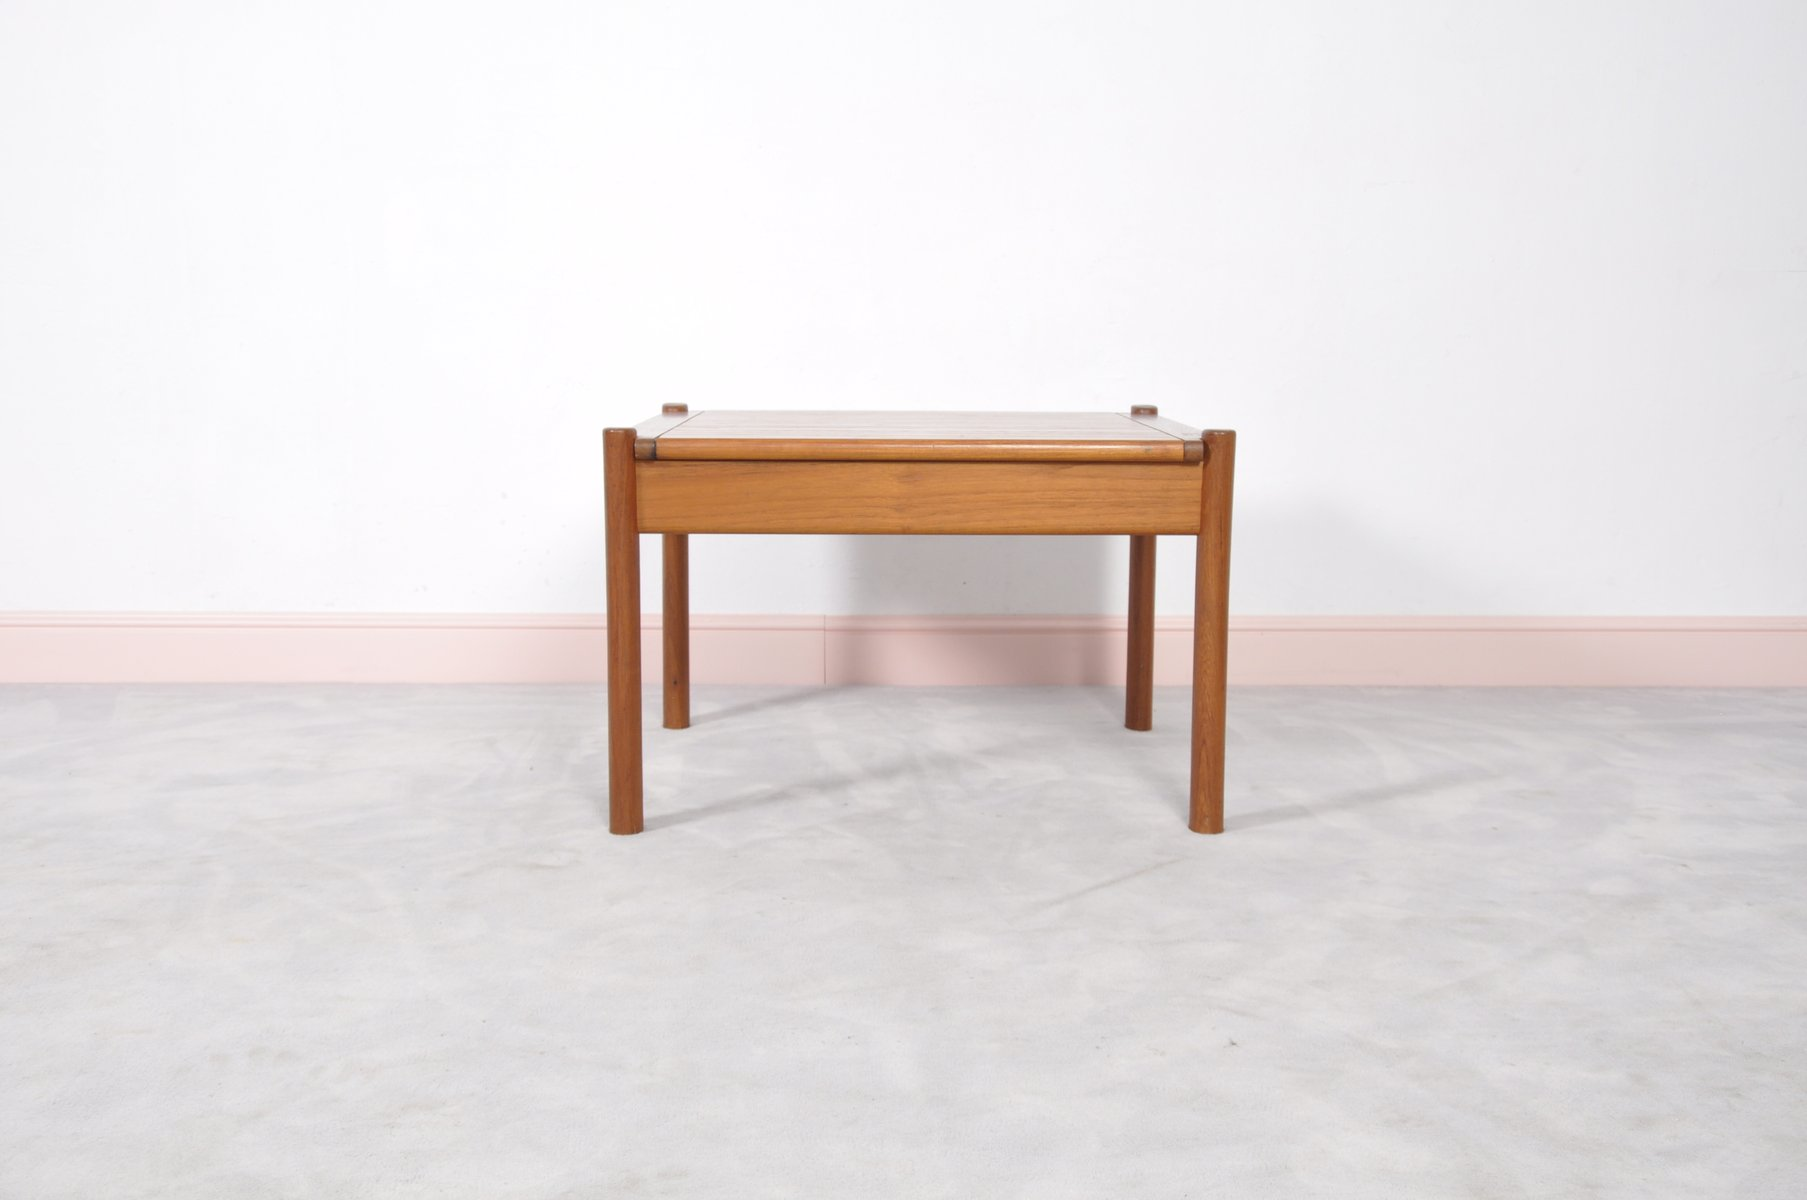 Delightful Vintage Danish Teak Coffee Table With Rounded Edges For Sale At Pamono